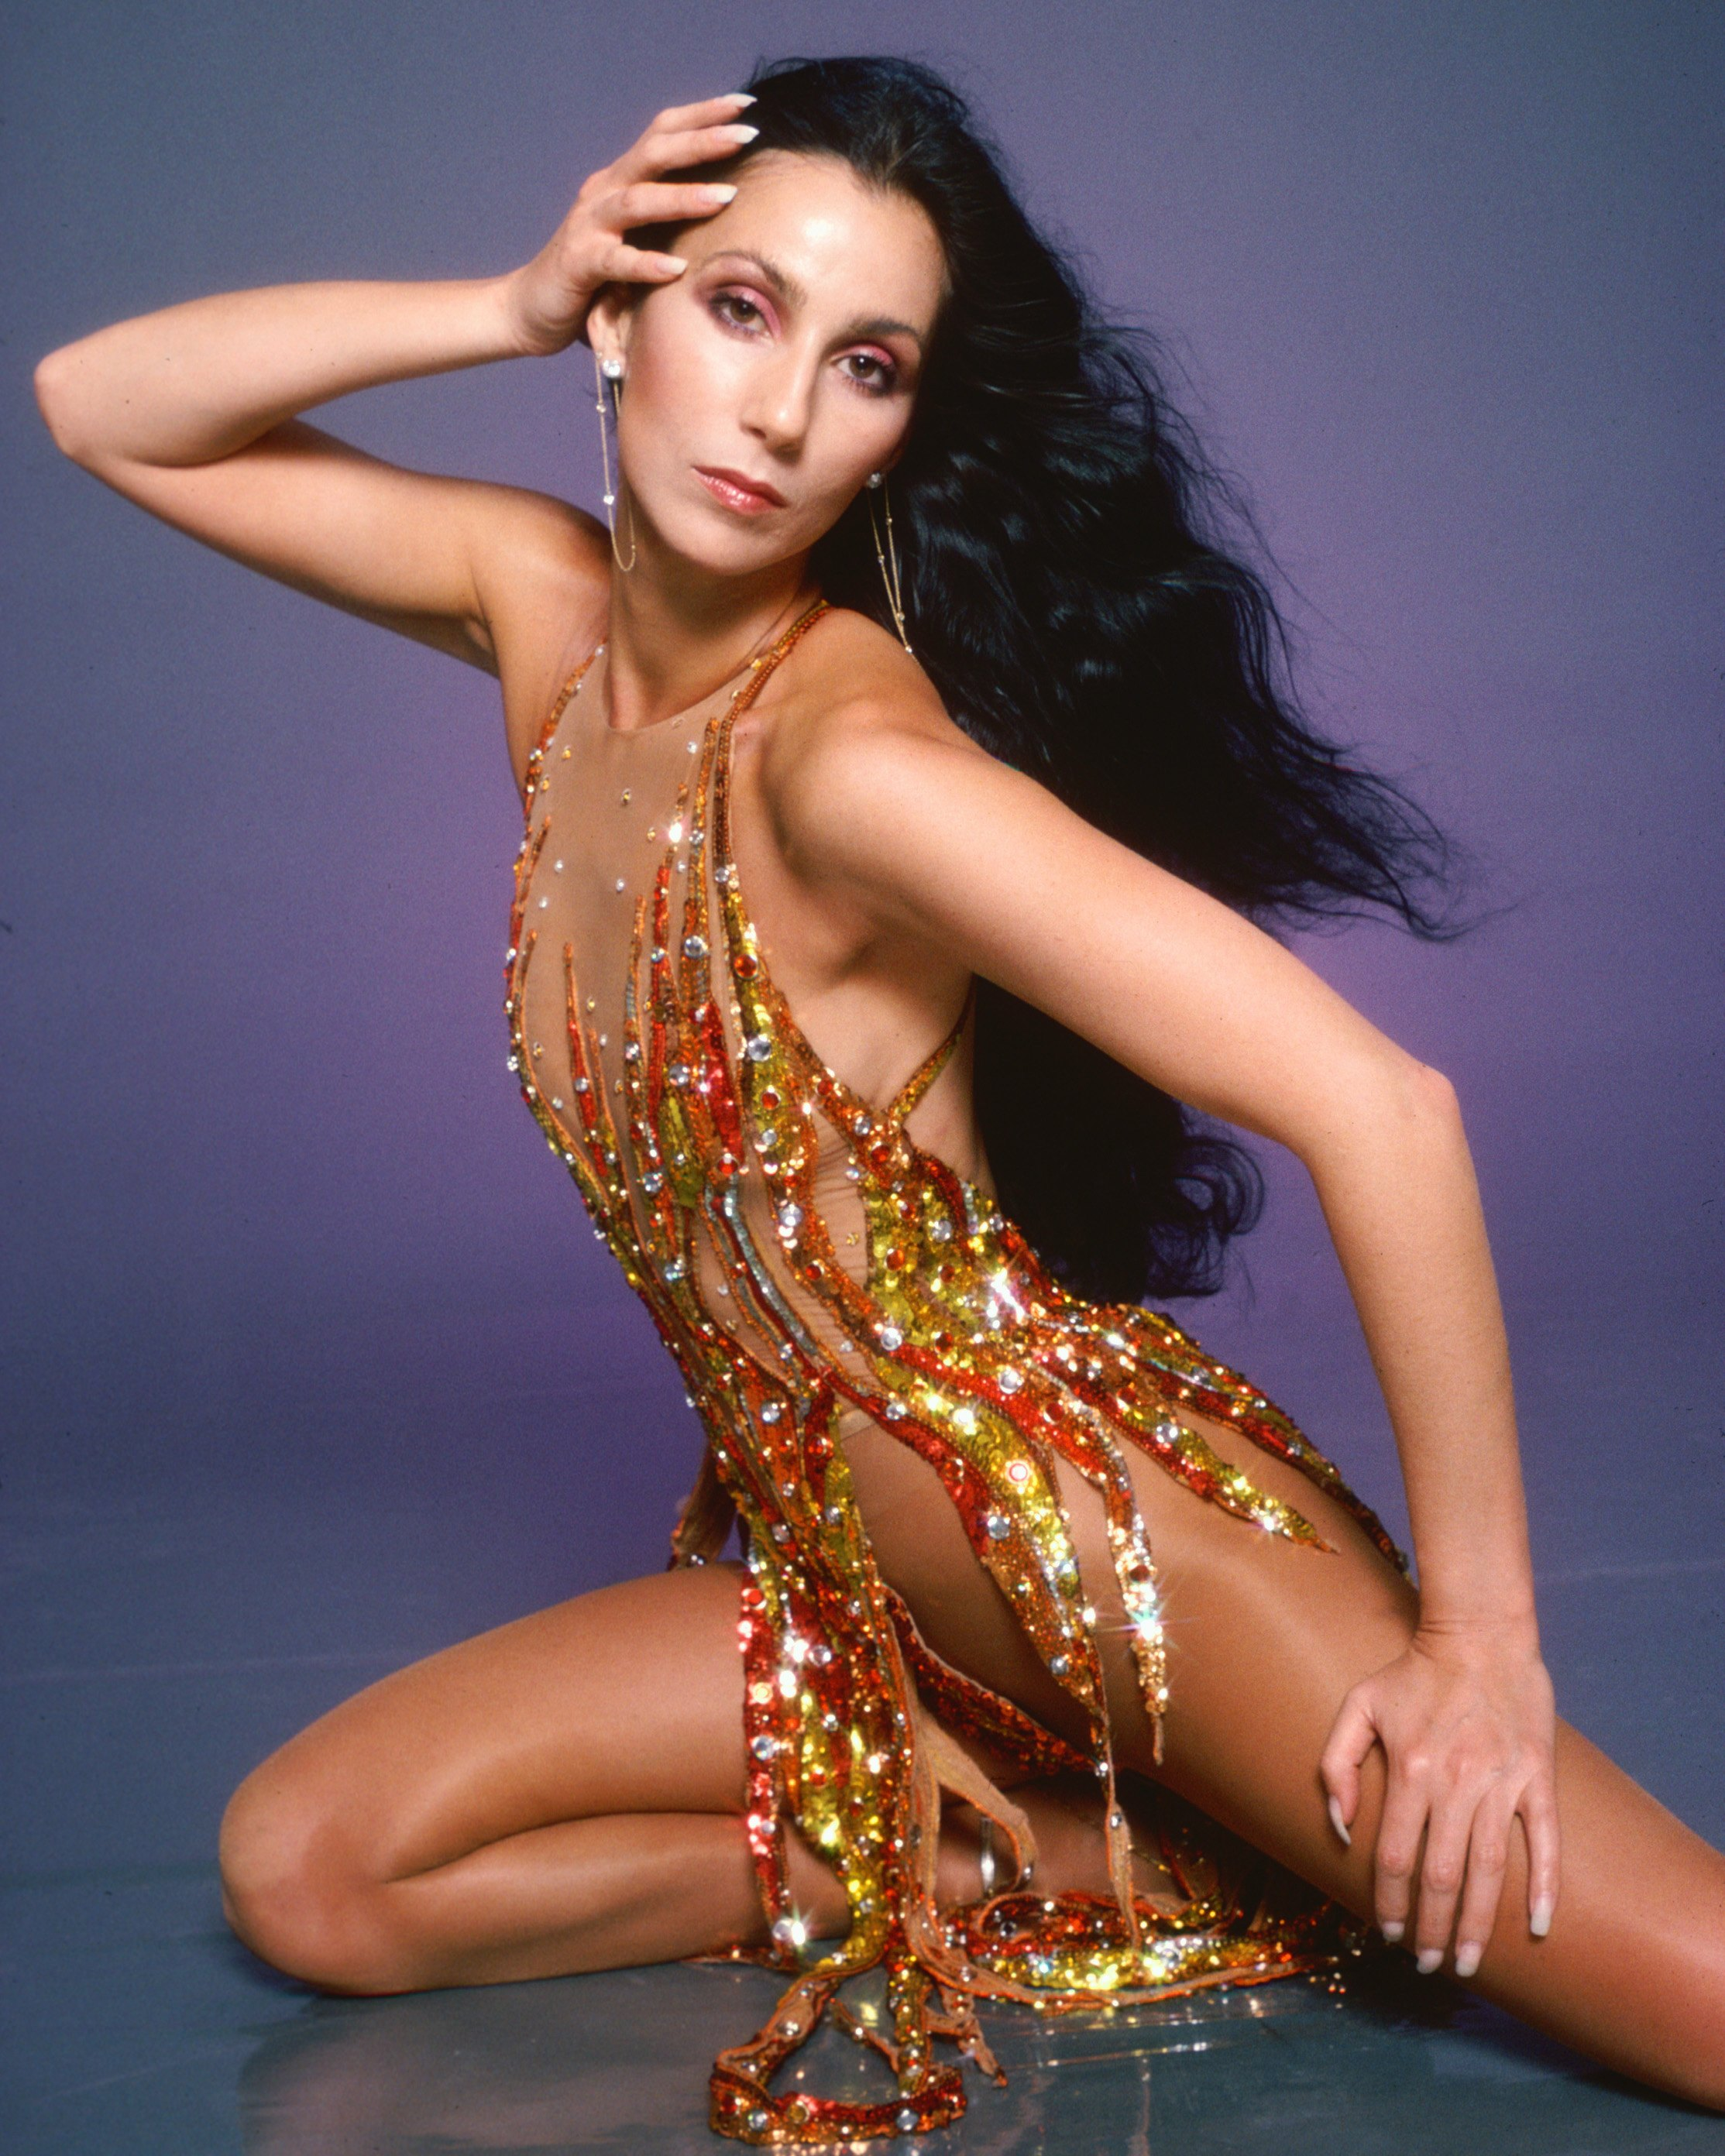 Cher poses for a portrait in 1978